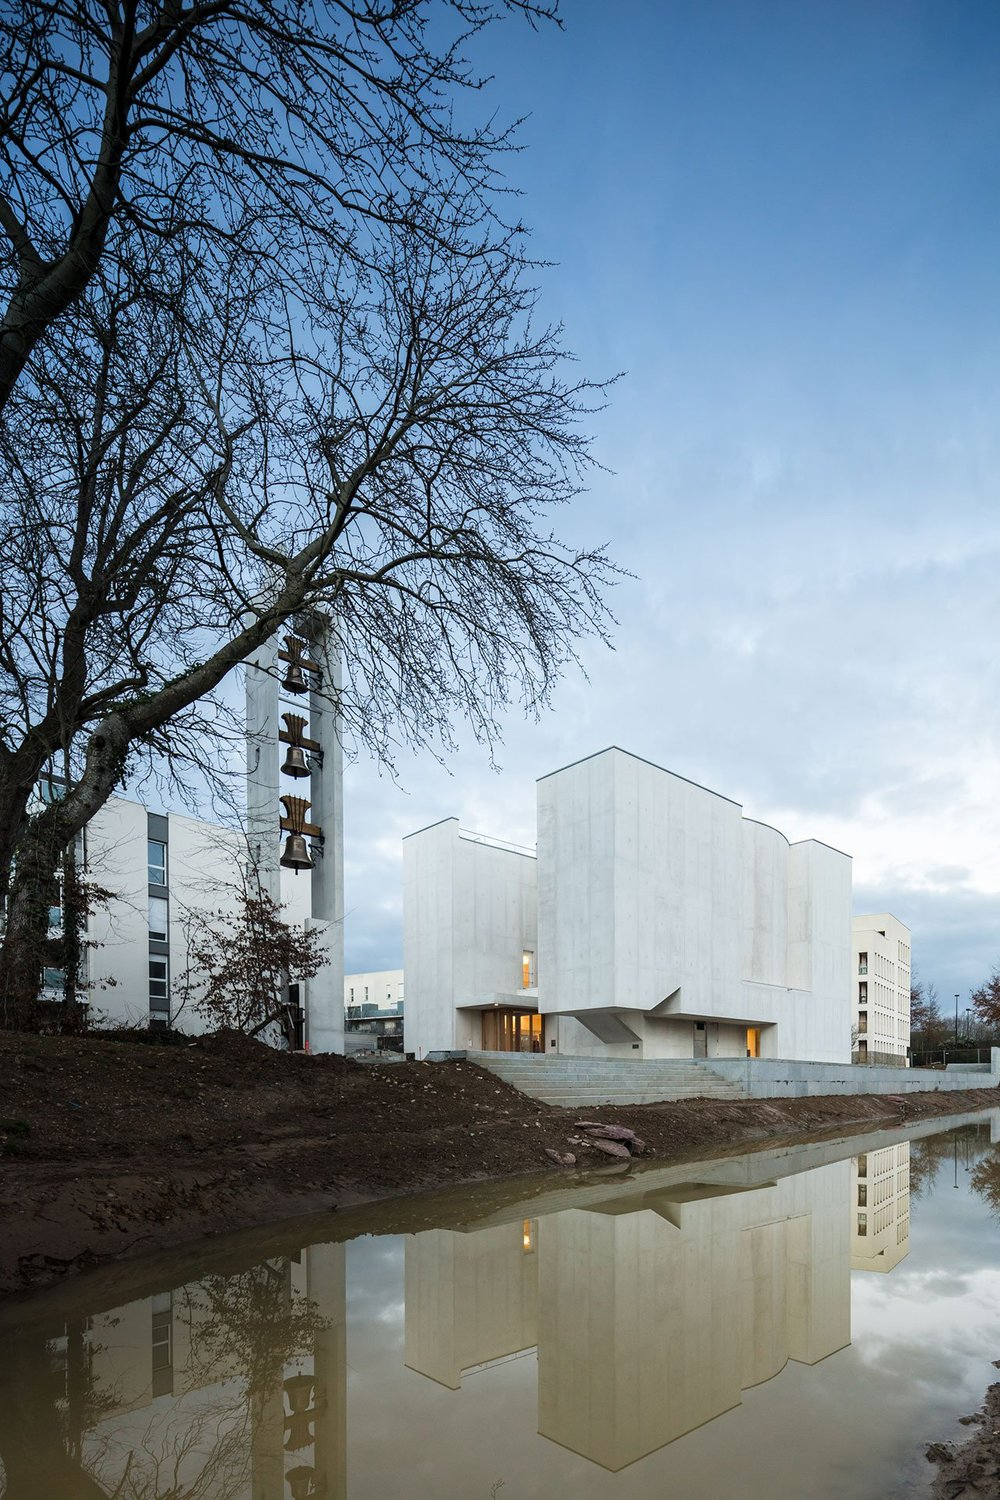 s5_church_of_saint_jacques_de_la_lande_rennes_france_alvaro_siza_vieira_dezainaa_1.jpg